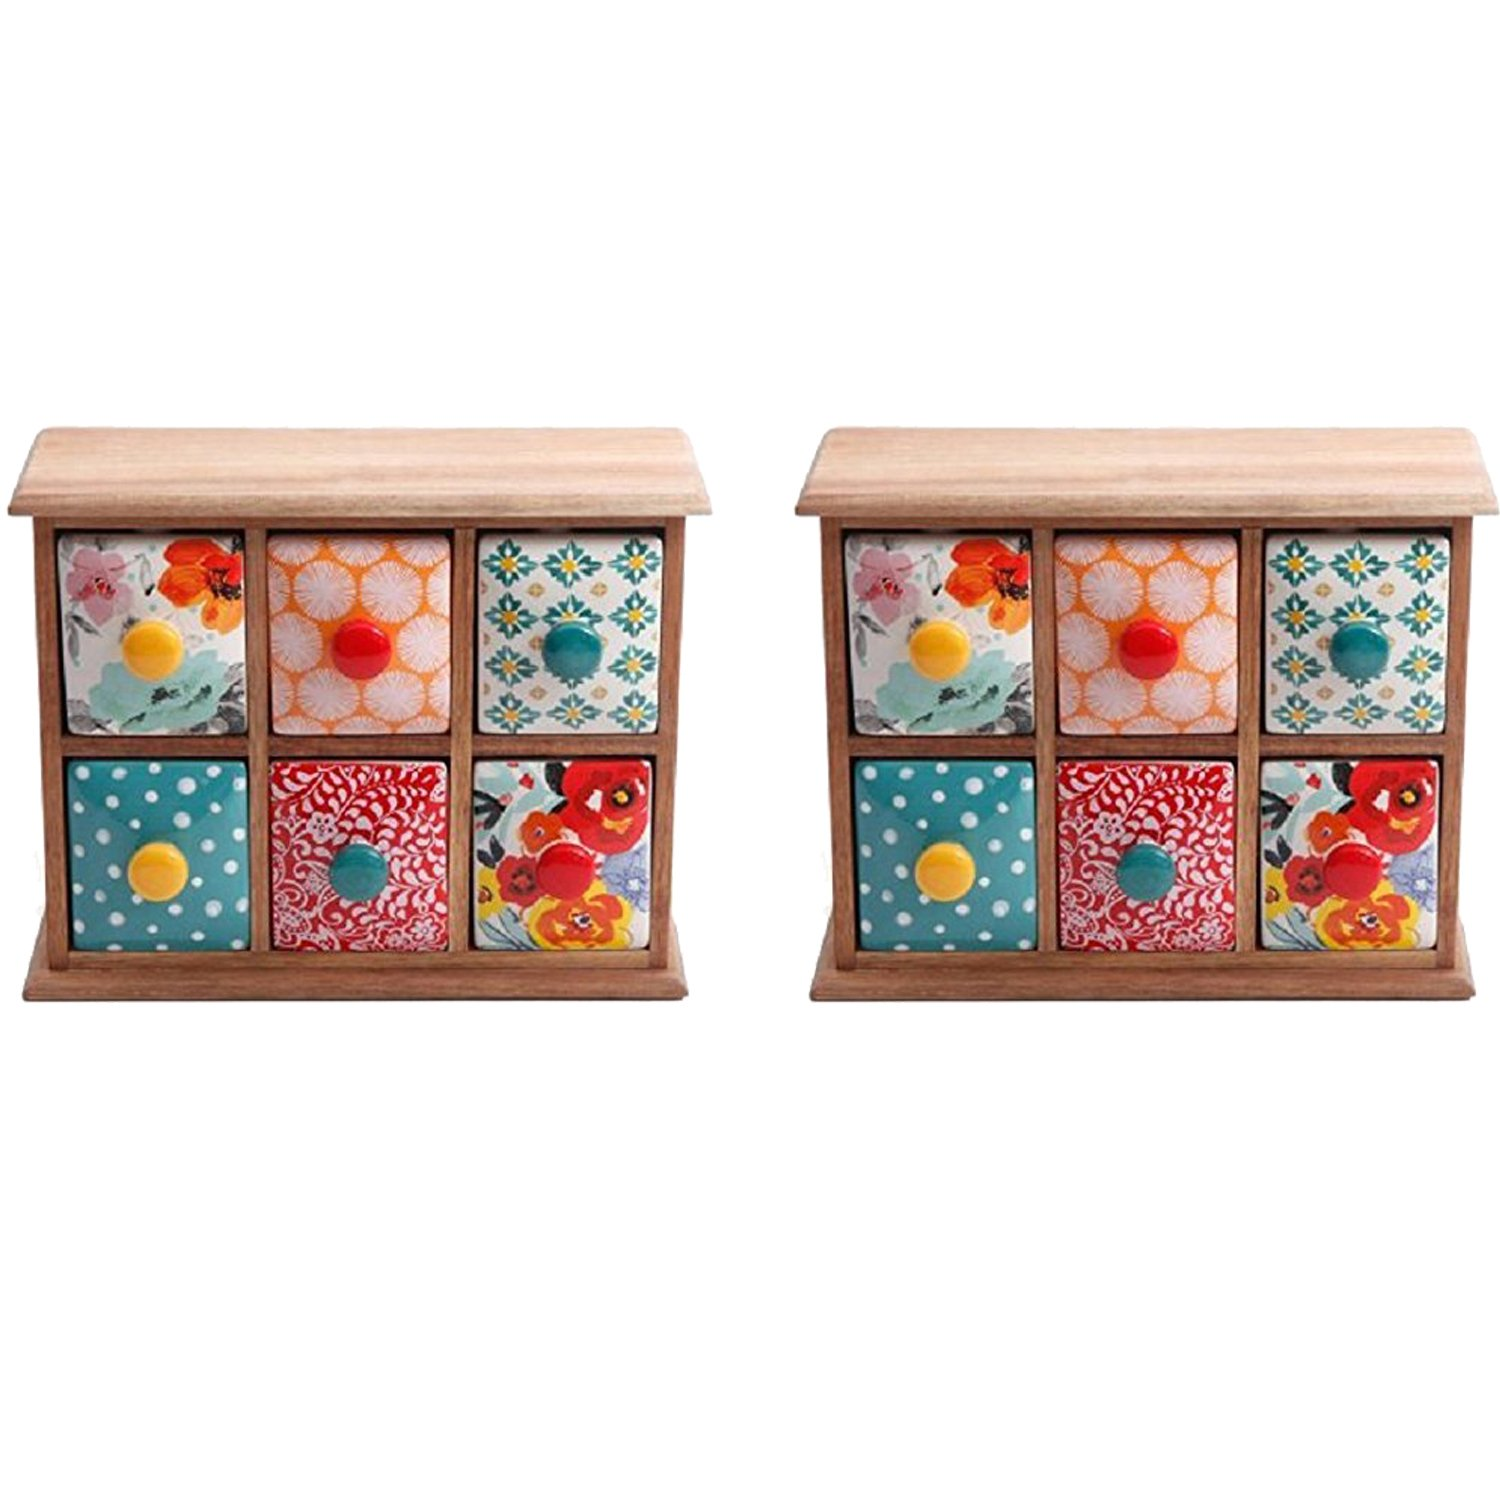 The Pioneer Woman Flea Market 6-Drawer Spice/Tea Box, 2-Pack by The Pioneer Woman